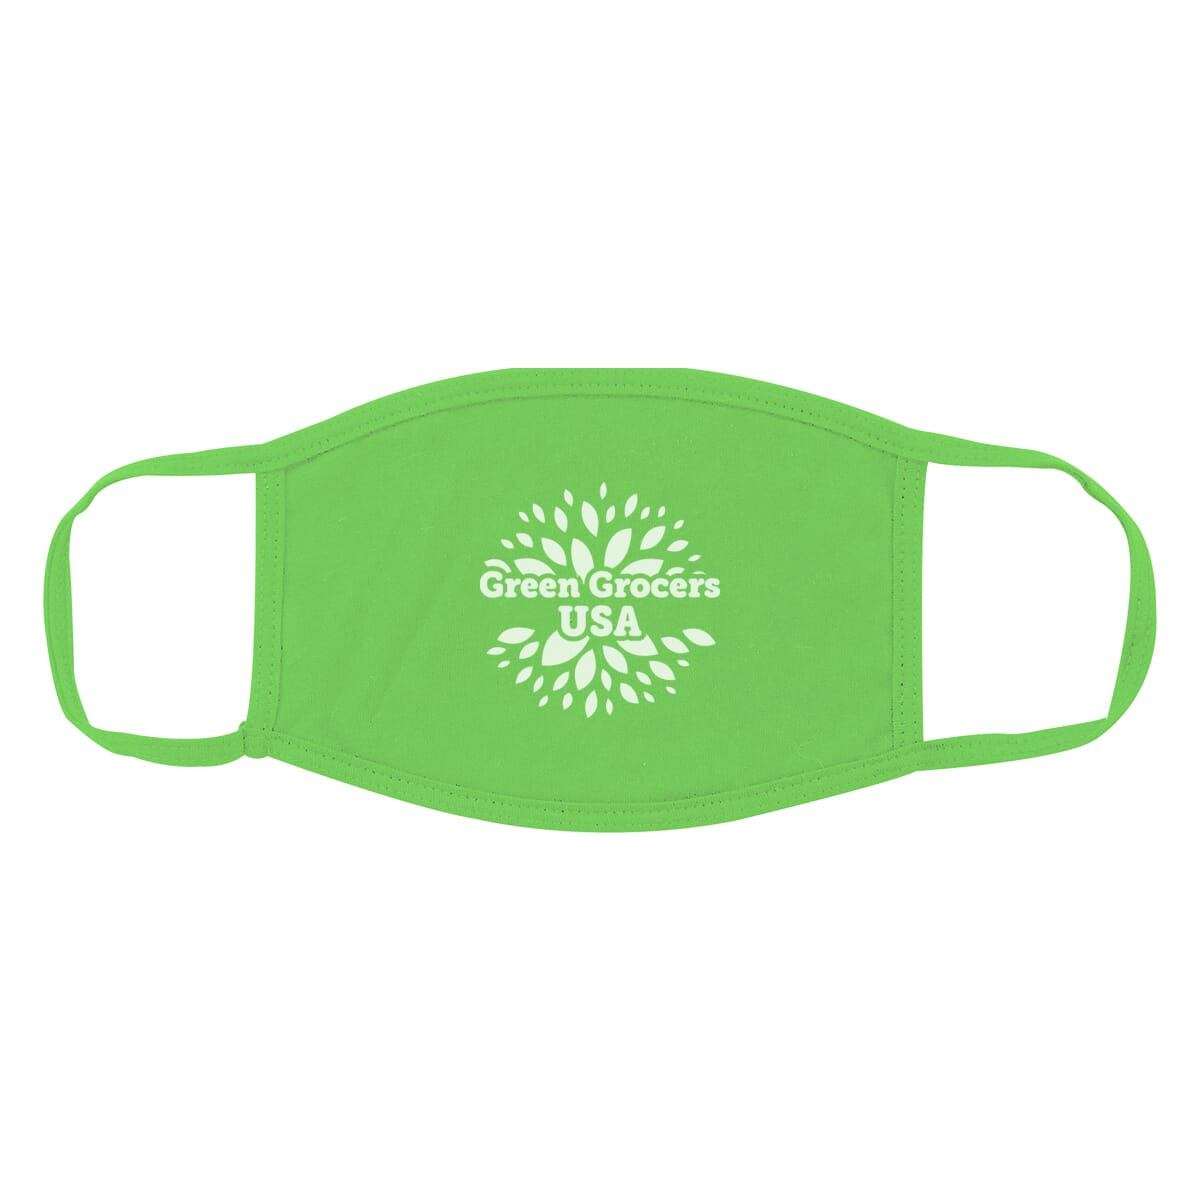 Reusable cotton face mask with logo